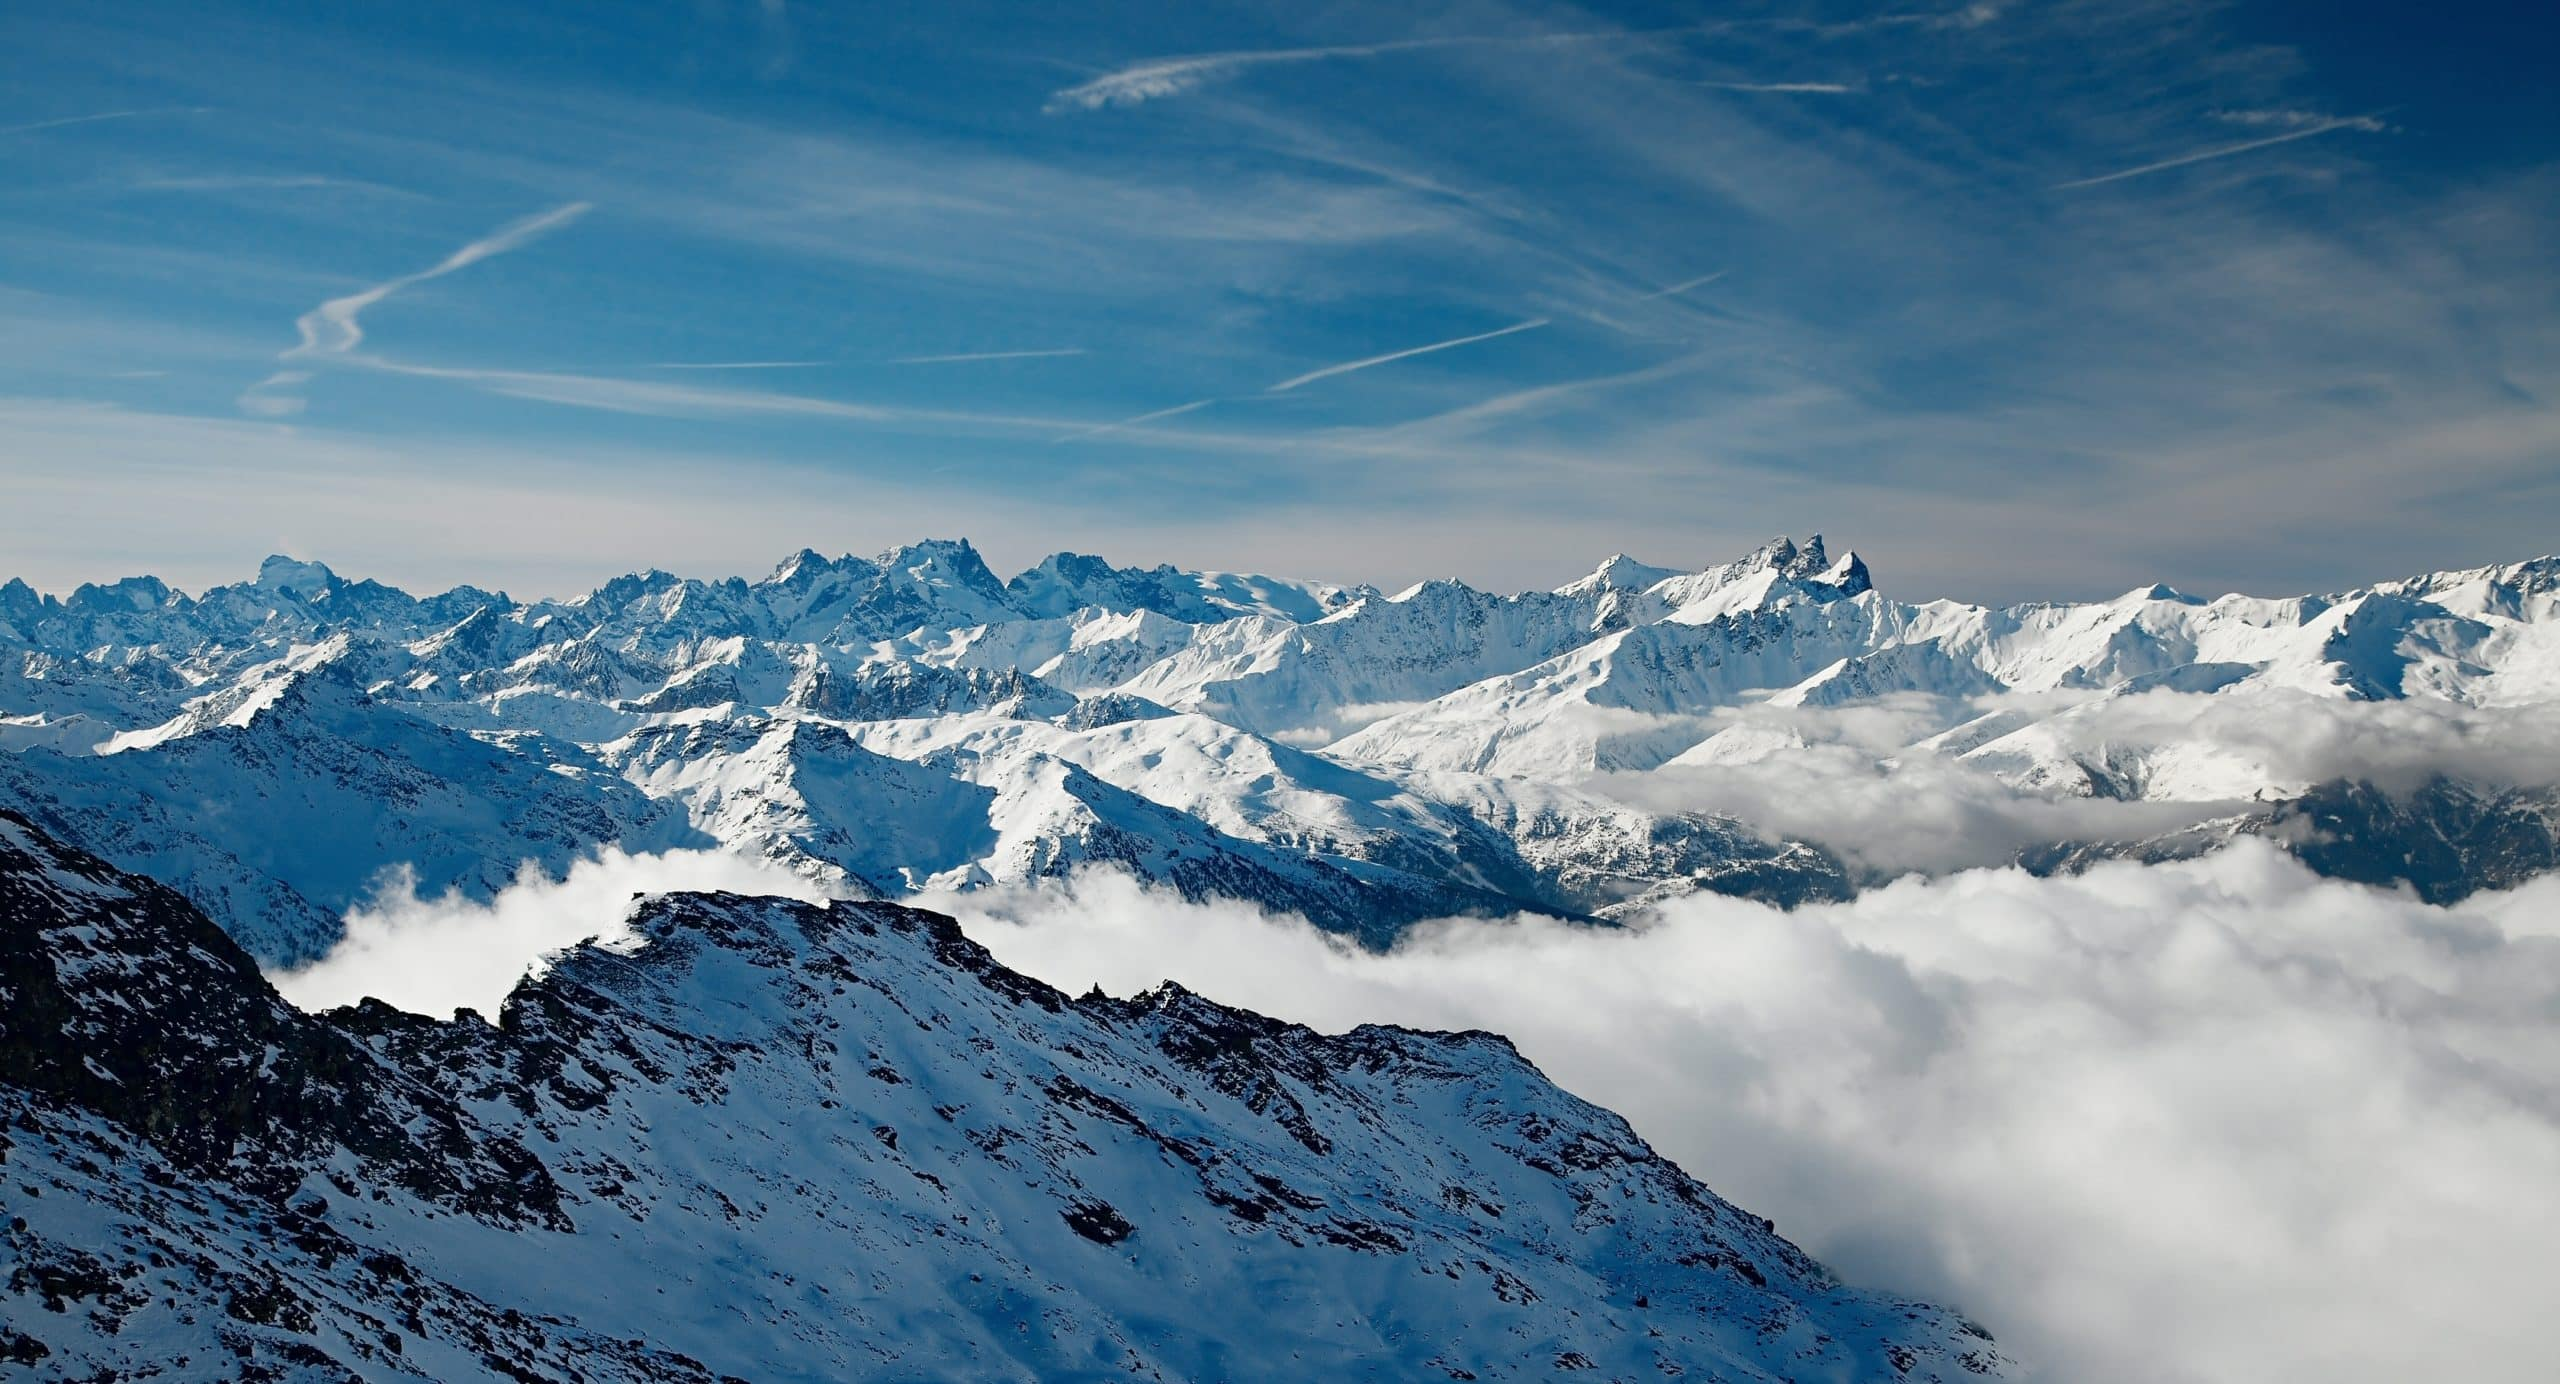 Confidence mounts in French Alps, as savvy buyers look to smaller resorts for deals